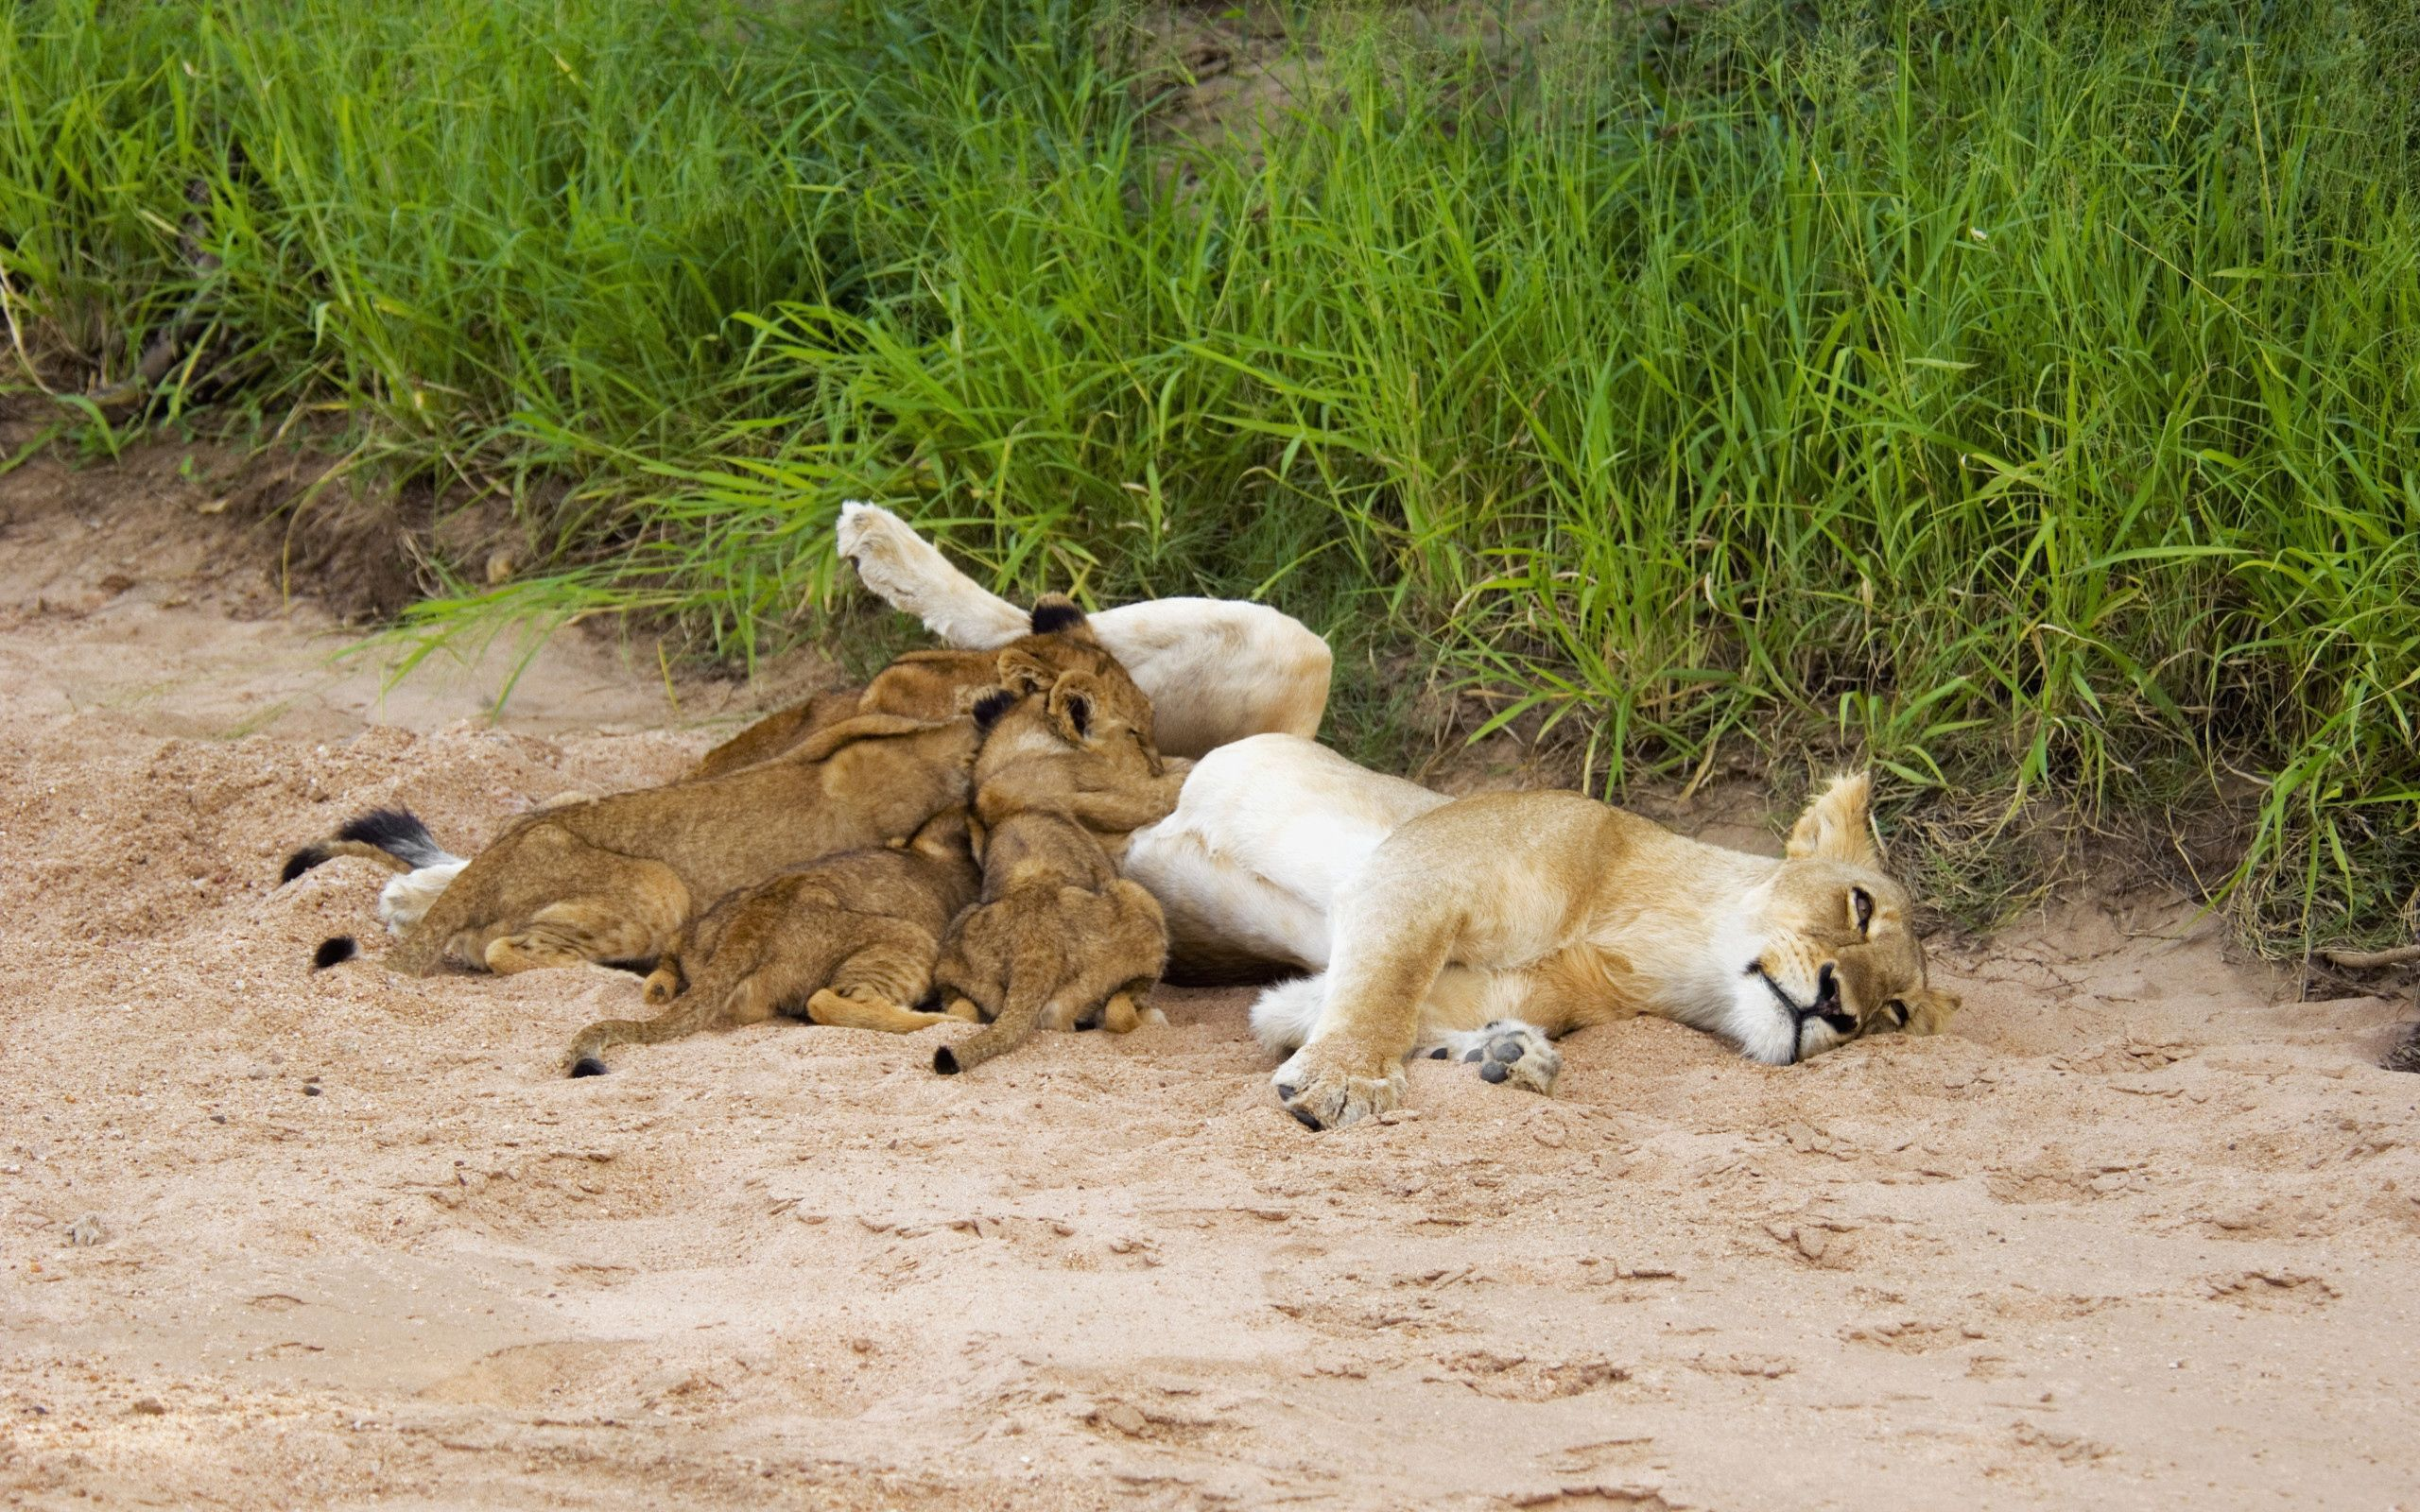 134967 download wallpaper Animals, Sand, Cubs, Young, To Lie Down, Lie, Grass, Lions screensavers and pictures for free